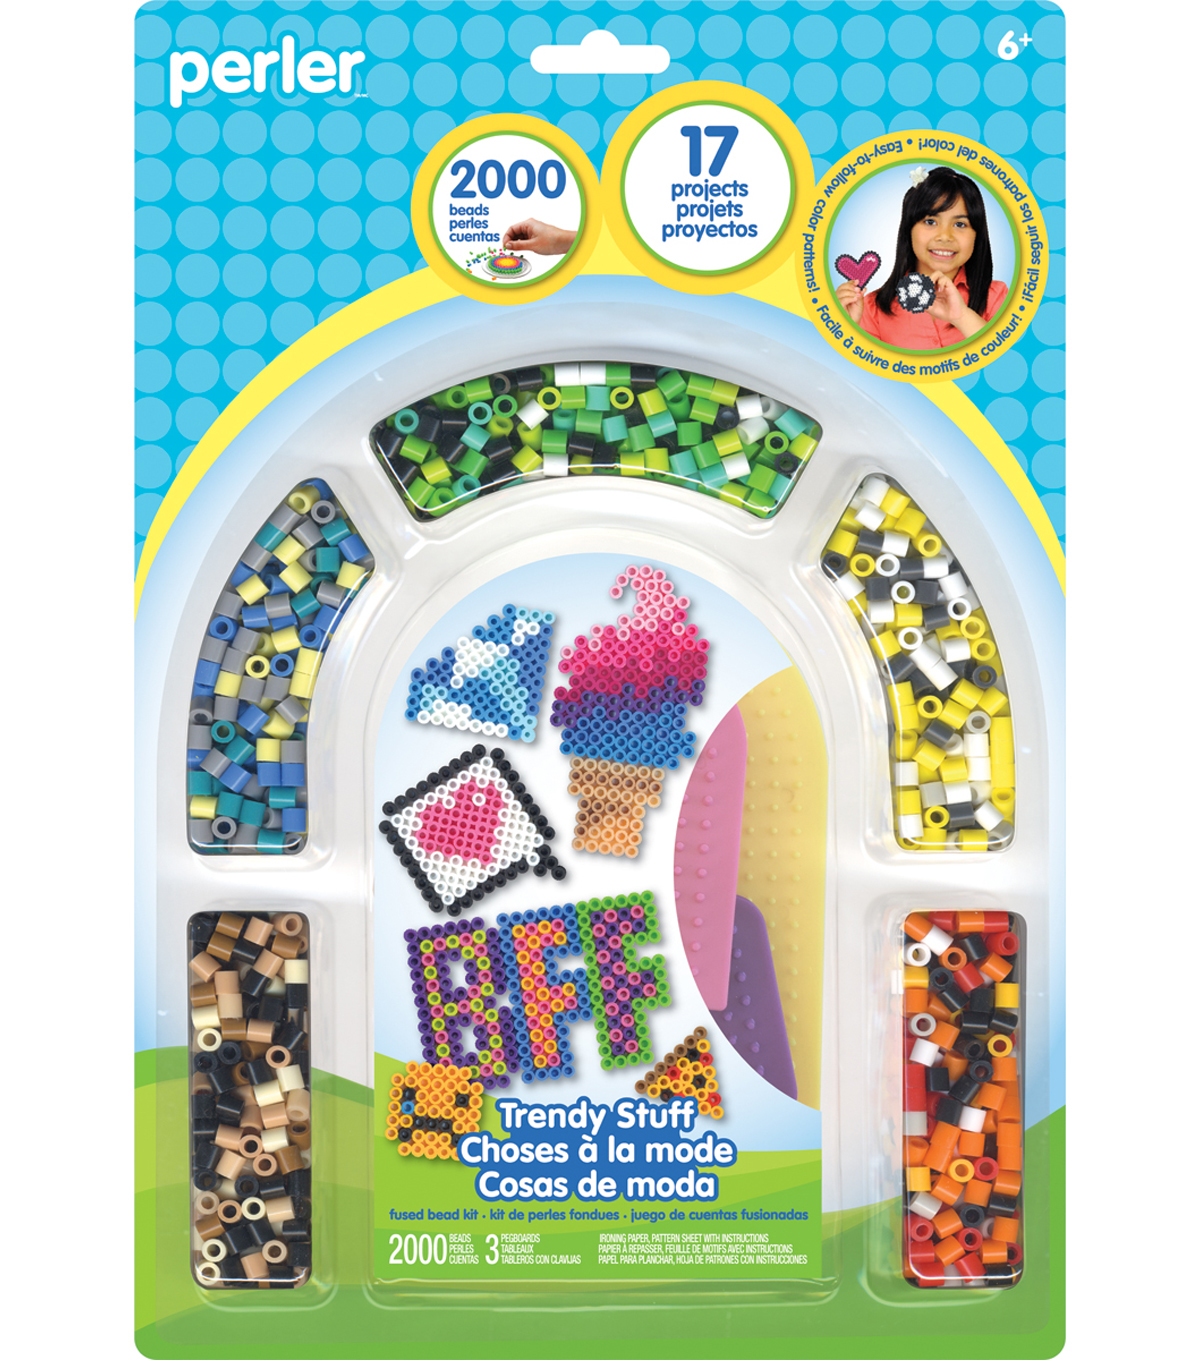 Perler Fused Bead Kit-Trendy Stuff